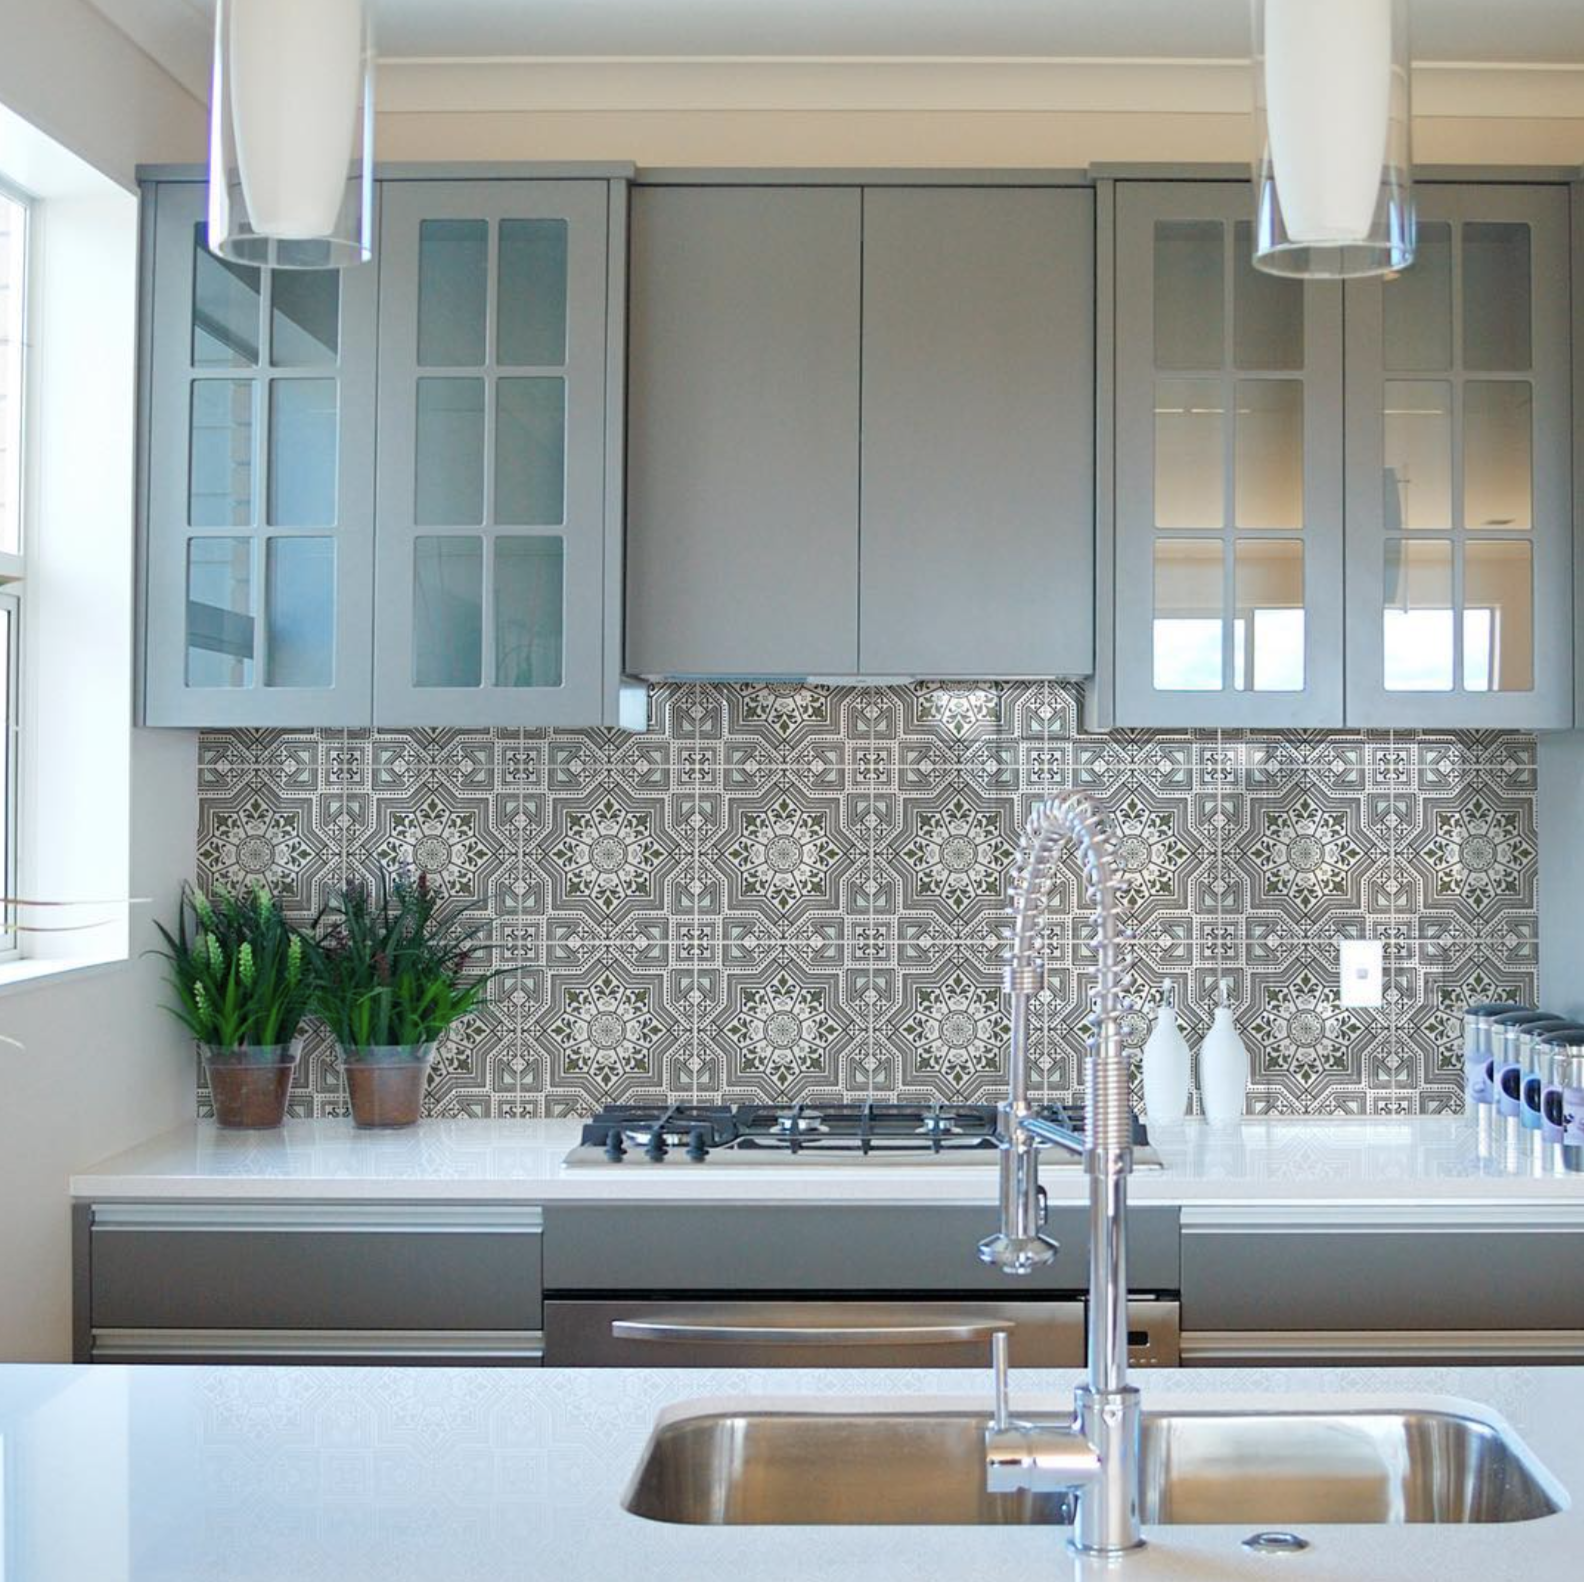 Stone Impressions tiled backsplash brings so much to this kitchen ...